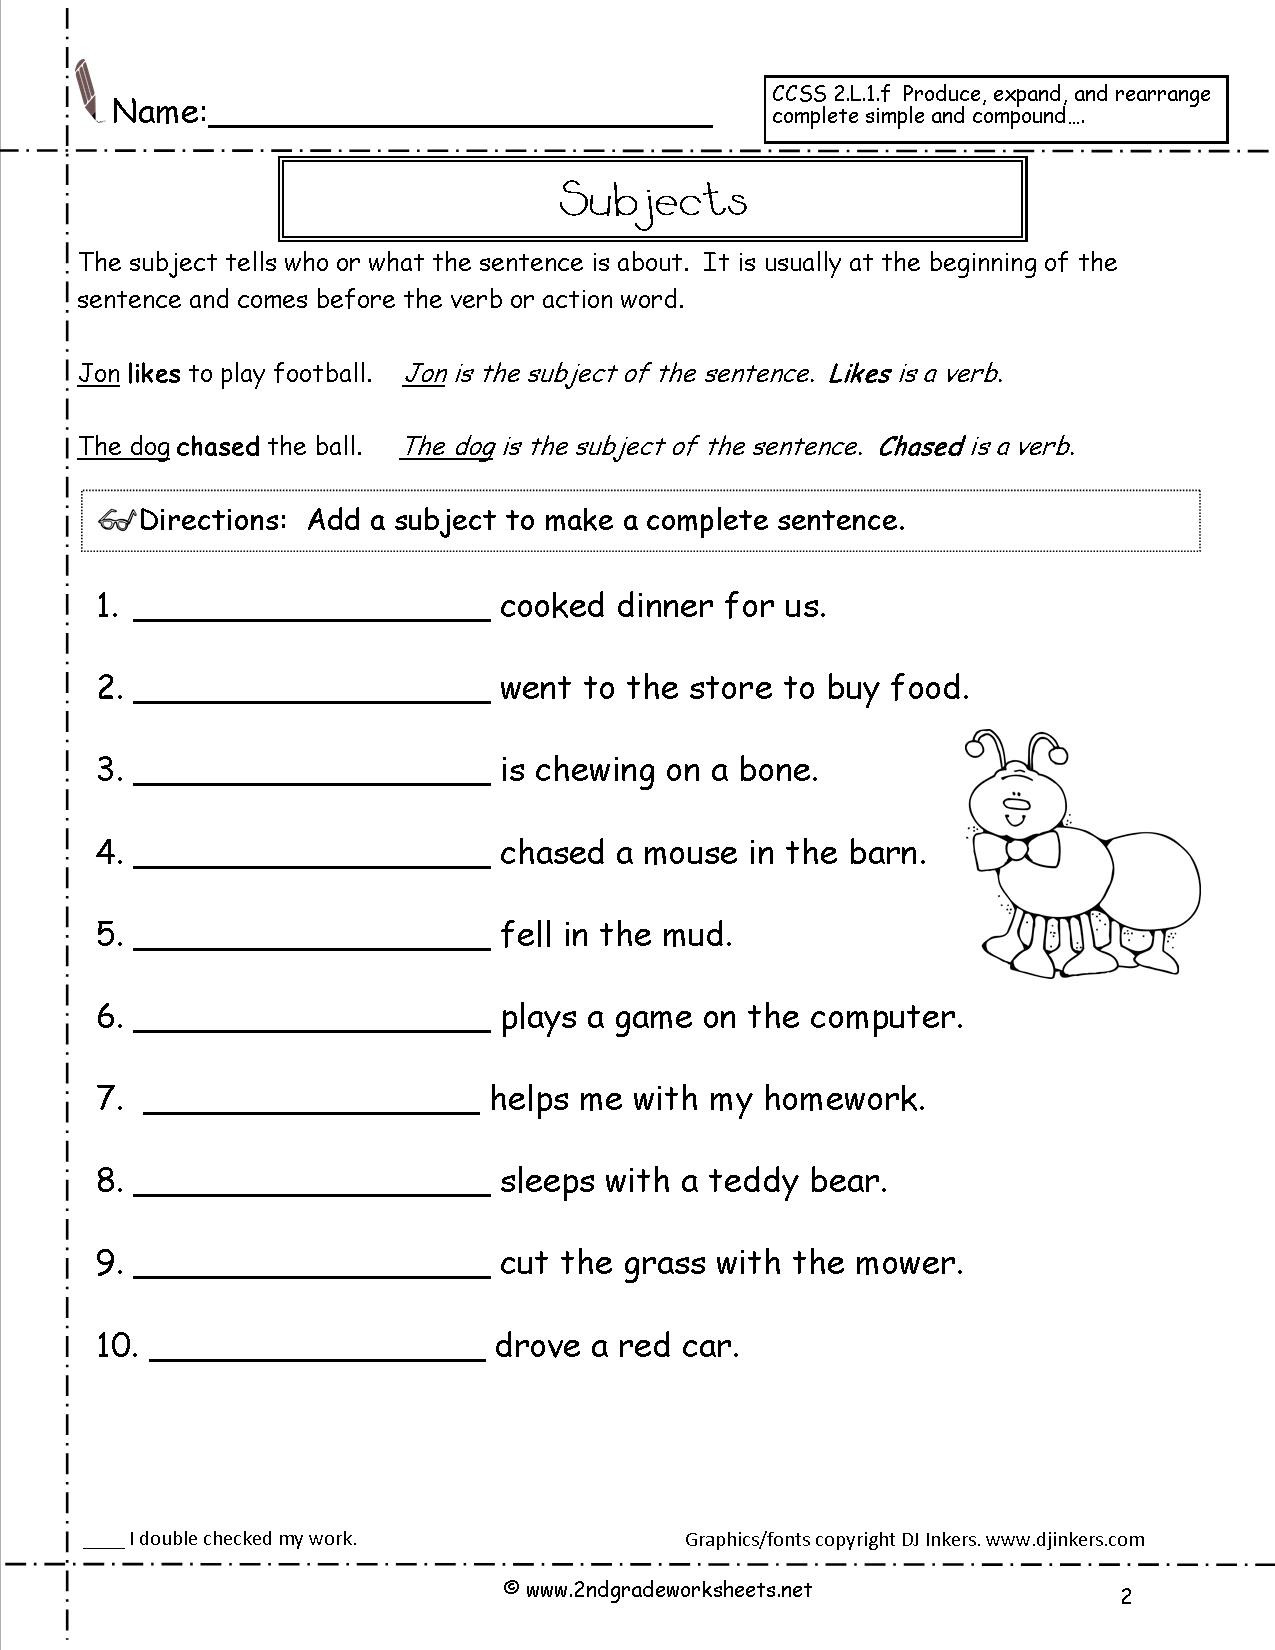 Scrambled Sentences Worksheets 3rd Grade Basic Math Words Printable Cursive Worksheets 3rd Grade